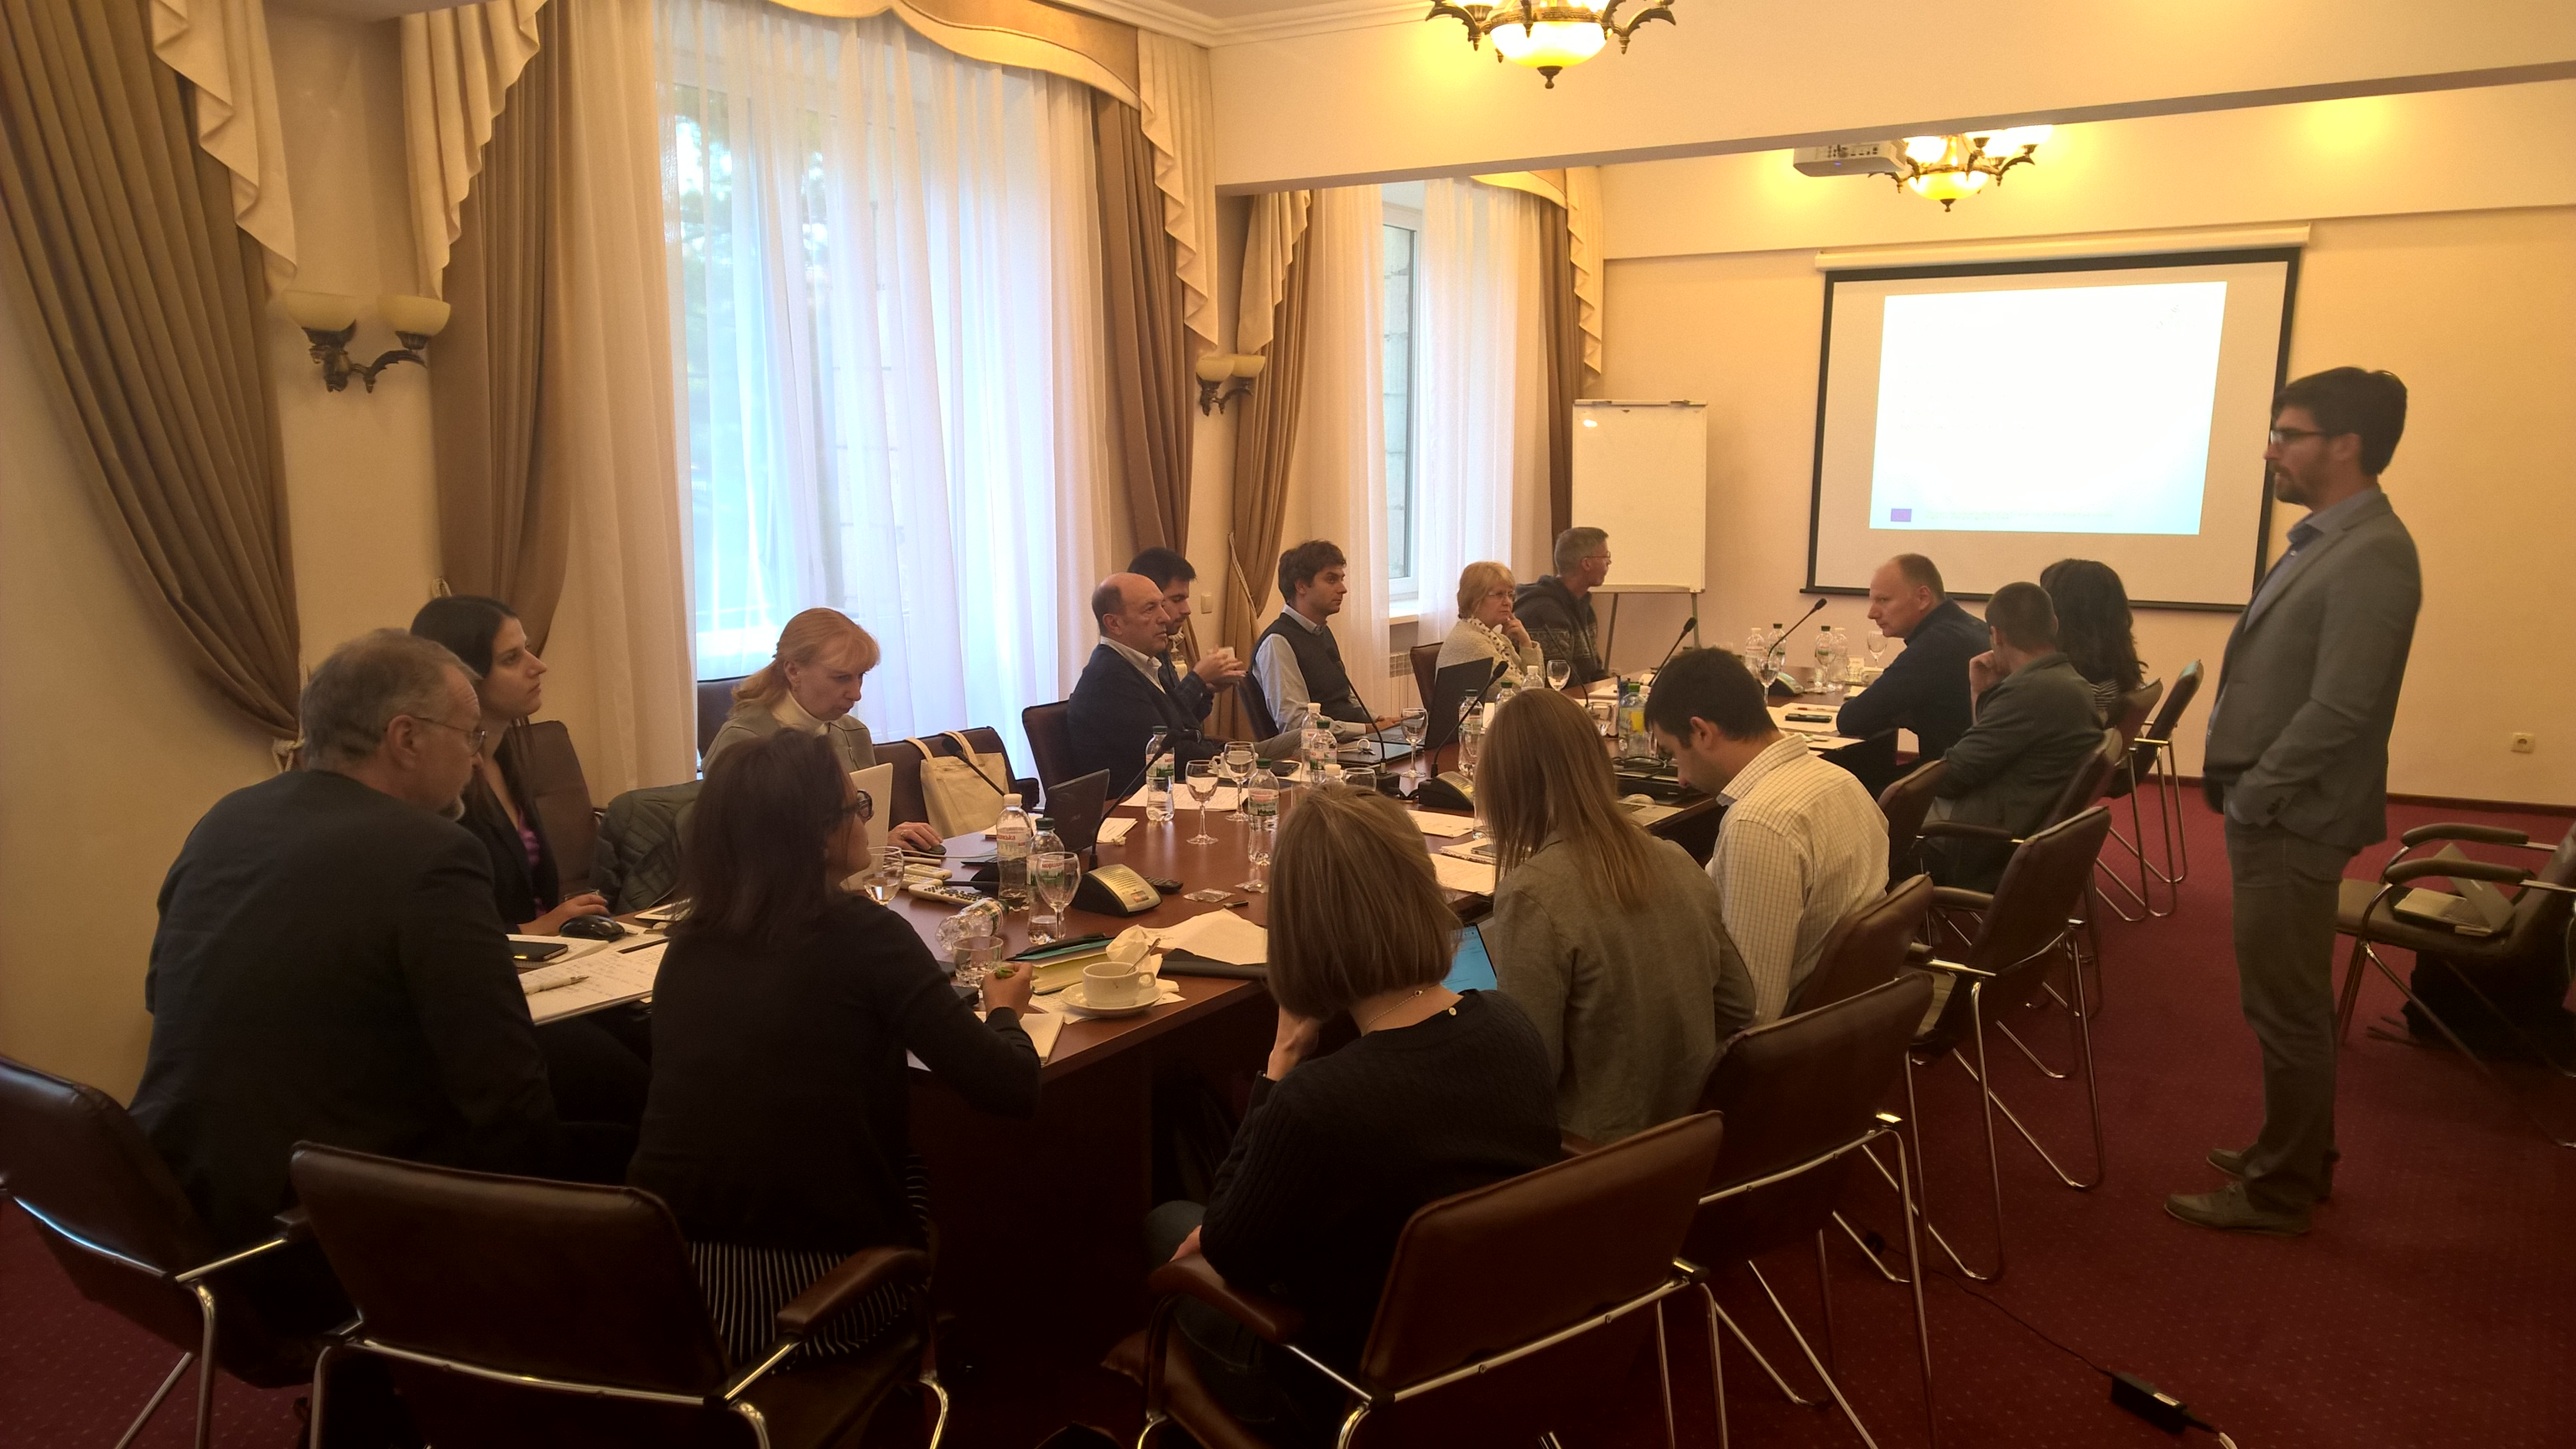 Second BIOPLAT-EU project meeting concluded in Kyiv on 26 September 2019